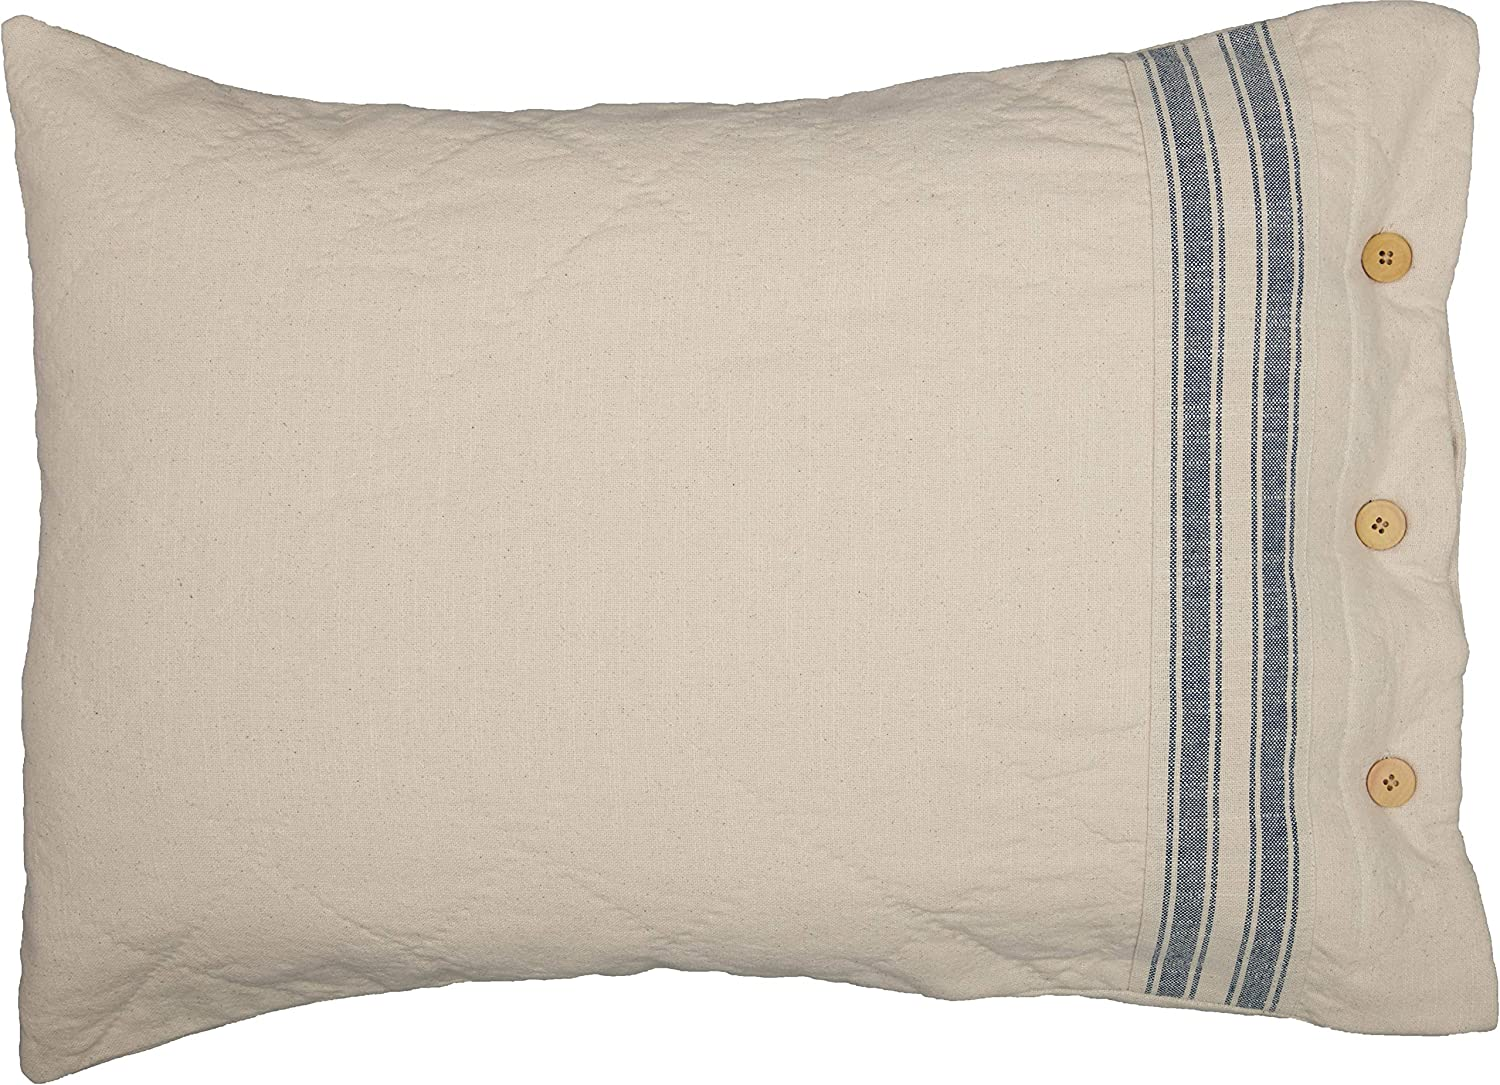 piper classics market place blue ticking stripe standard size pillow sham 21 x 27 farmhouse style bedding in blue and natural cream